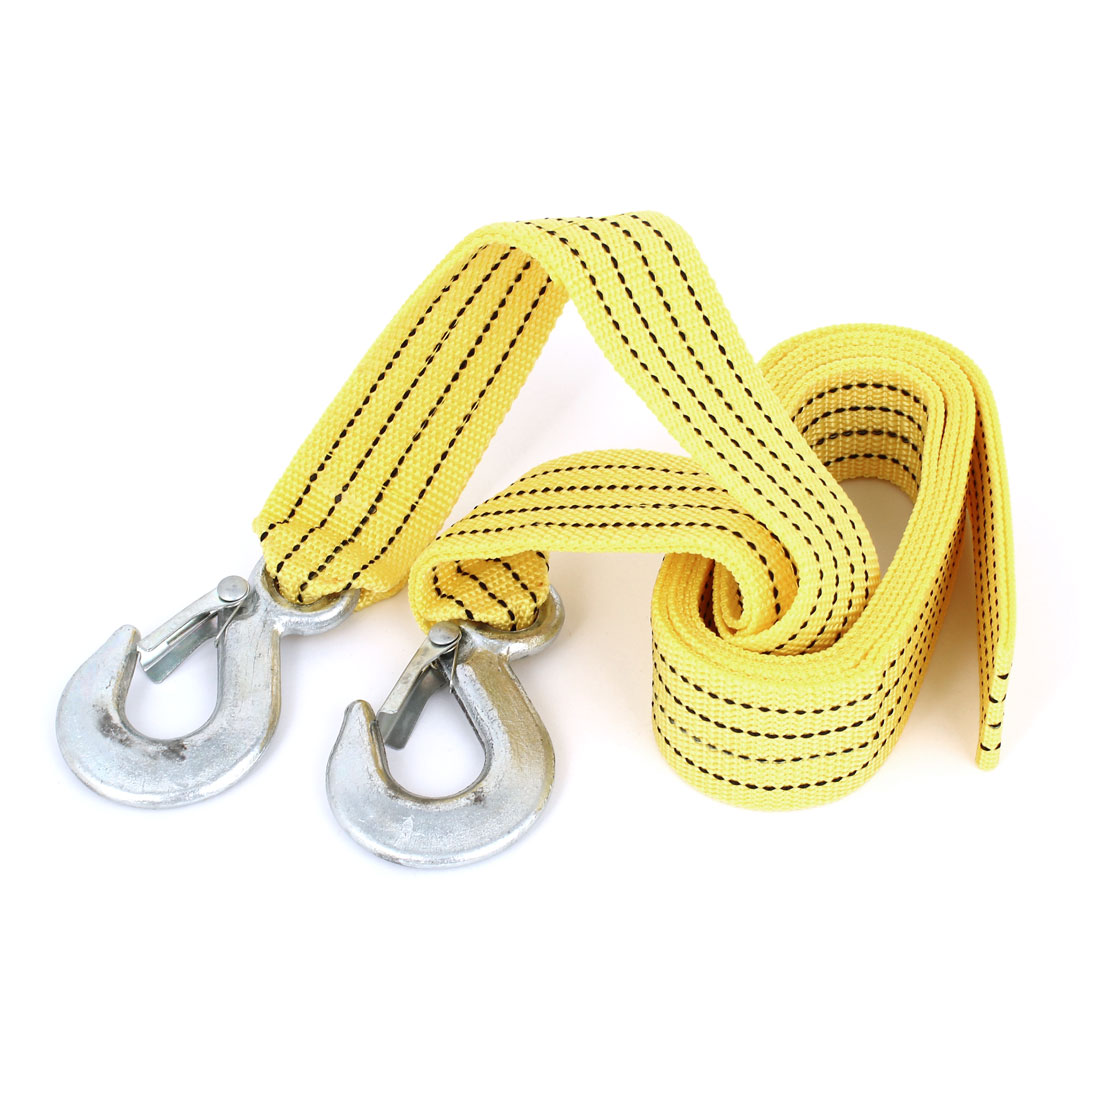 45mm Width 3 Meters Yellow Nylon Tow Webbing Strap Belt 3 Tons for Car